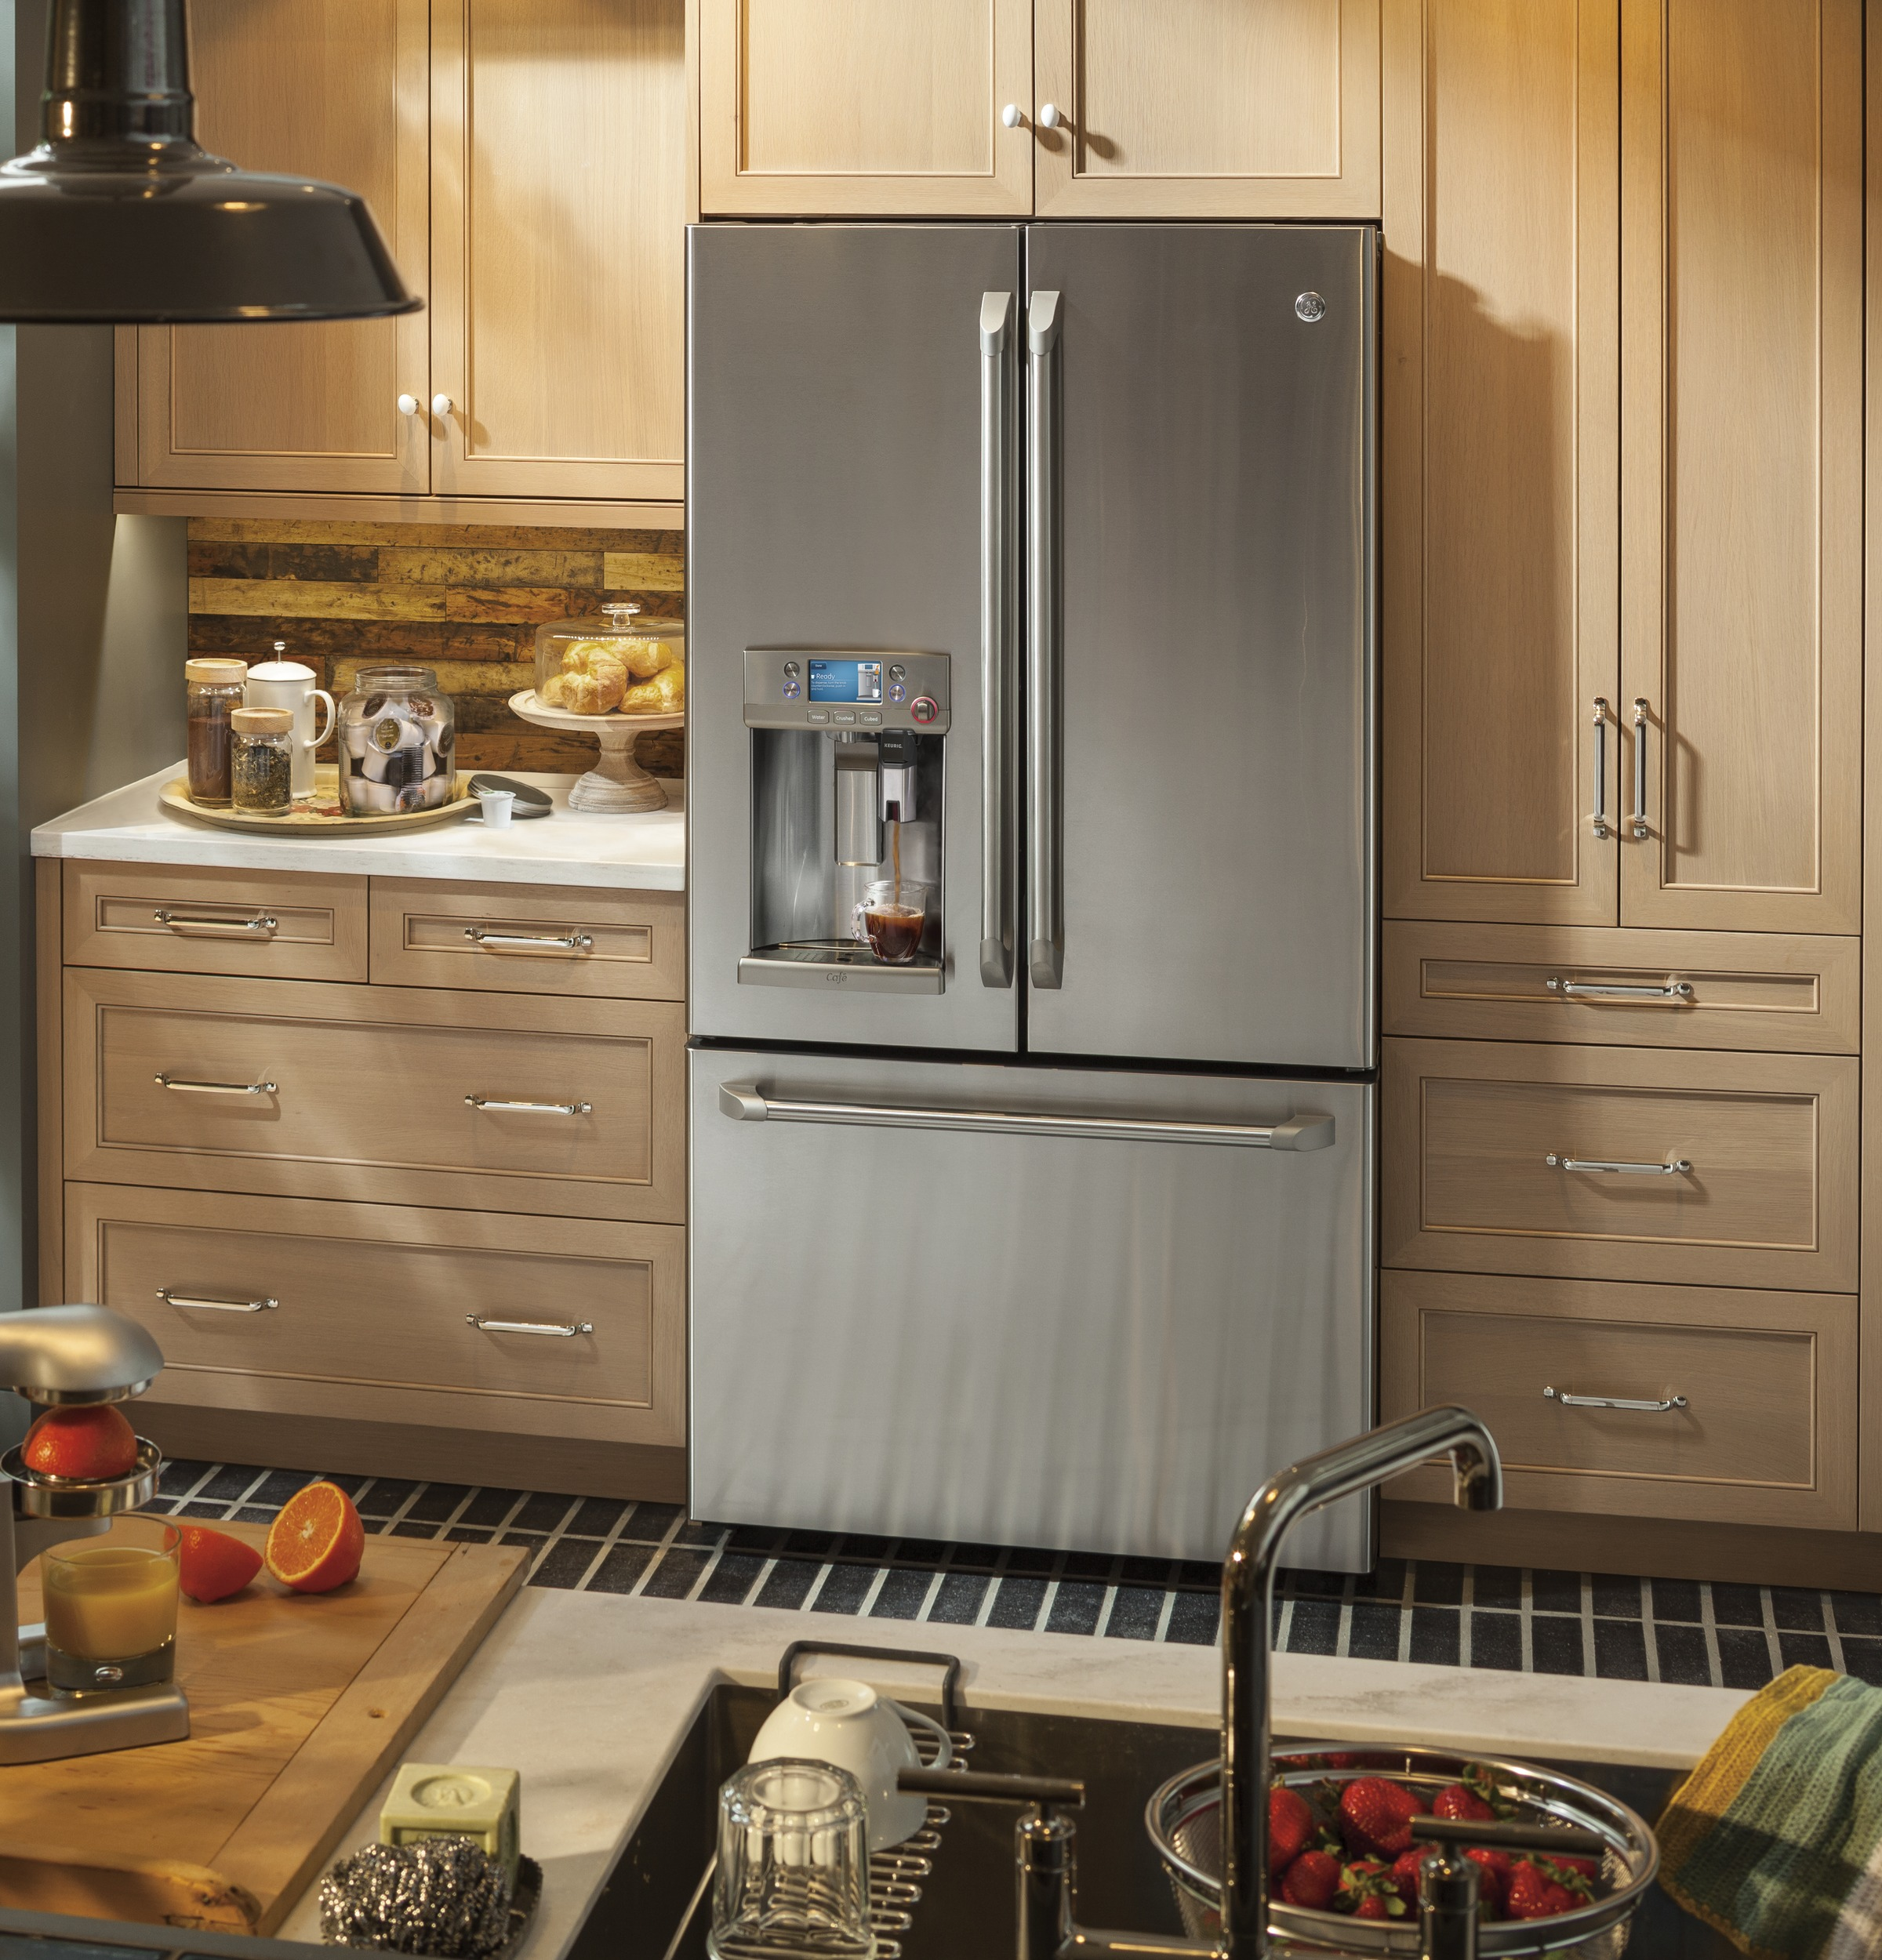 Model: CFE28USHSS | GE Cafe GE Café™ Series ENERGY STAR® 27.8 Cu. Ft. French-Door Refrigerator with Keurig® K-Cup® Brewing System